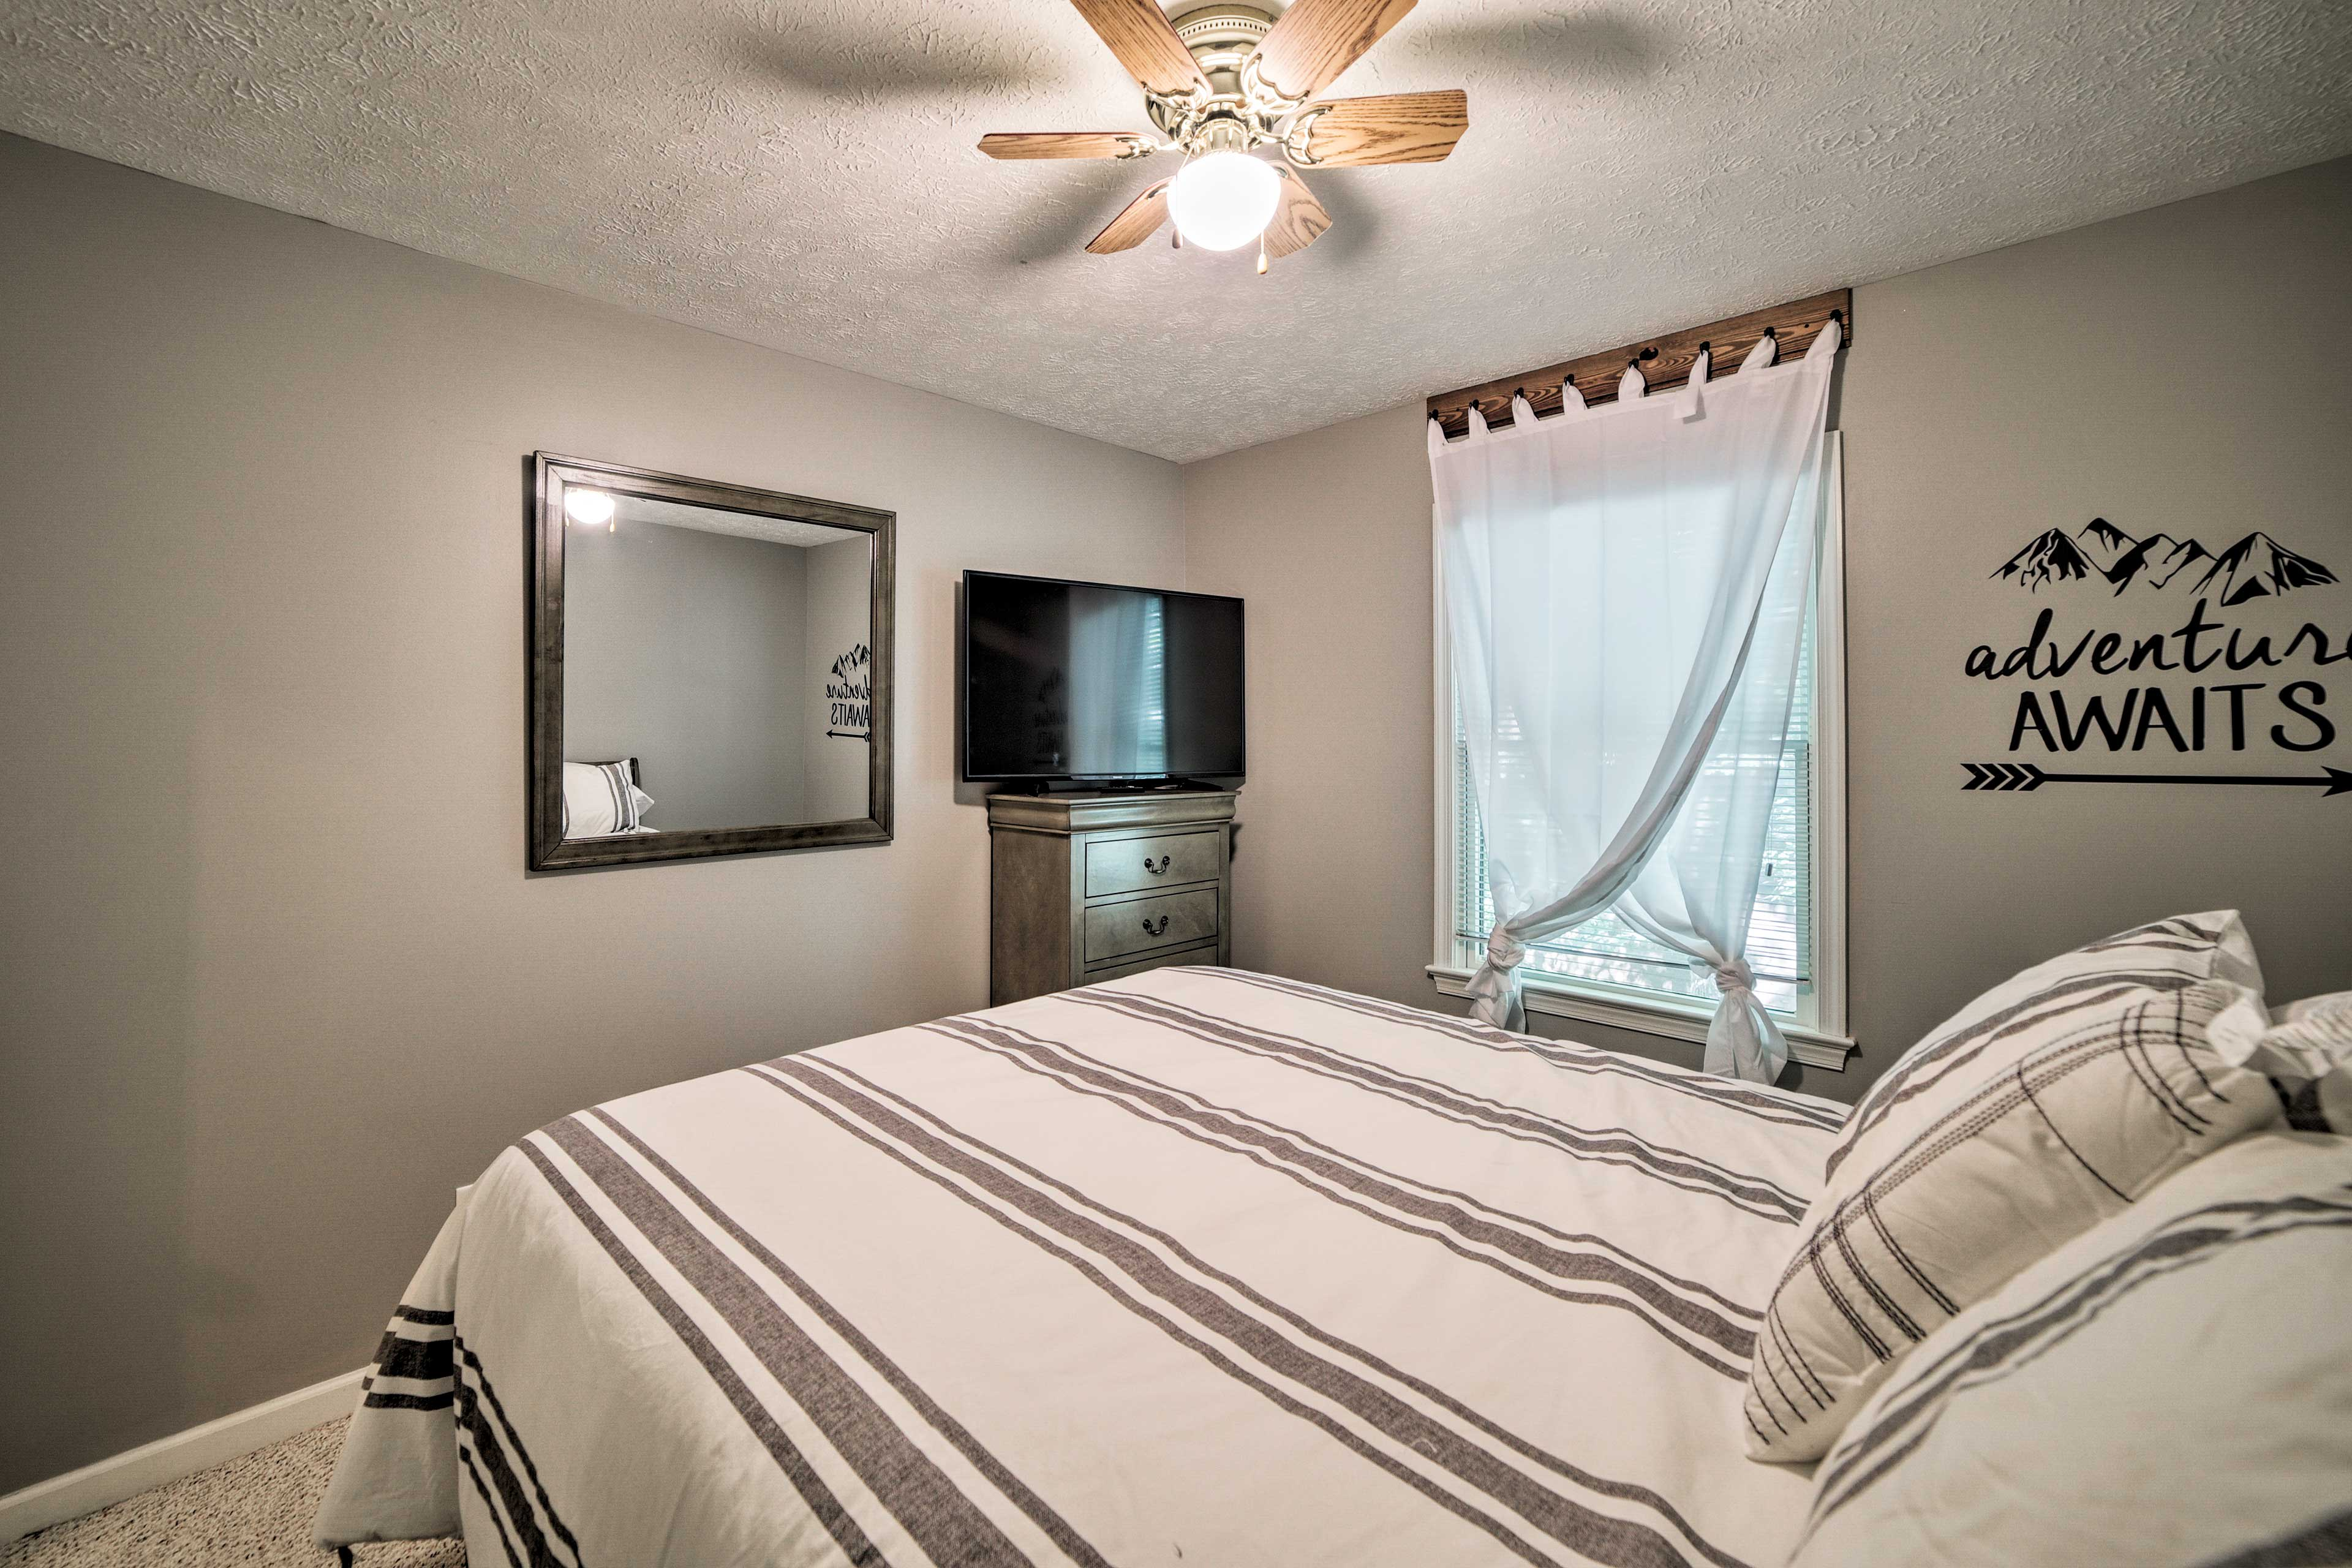 Adventure awaits when you choose this second bedroom!